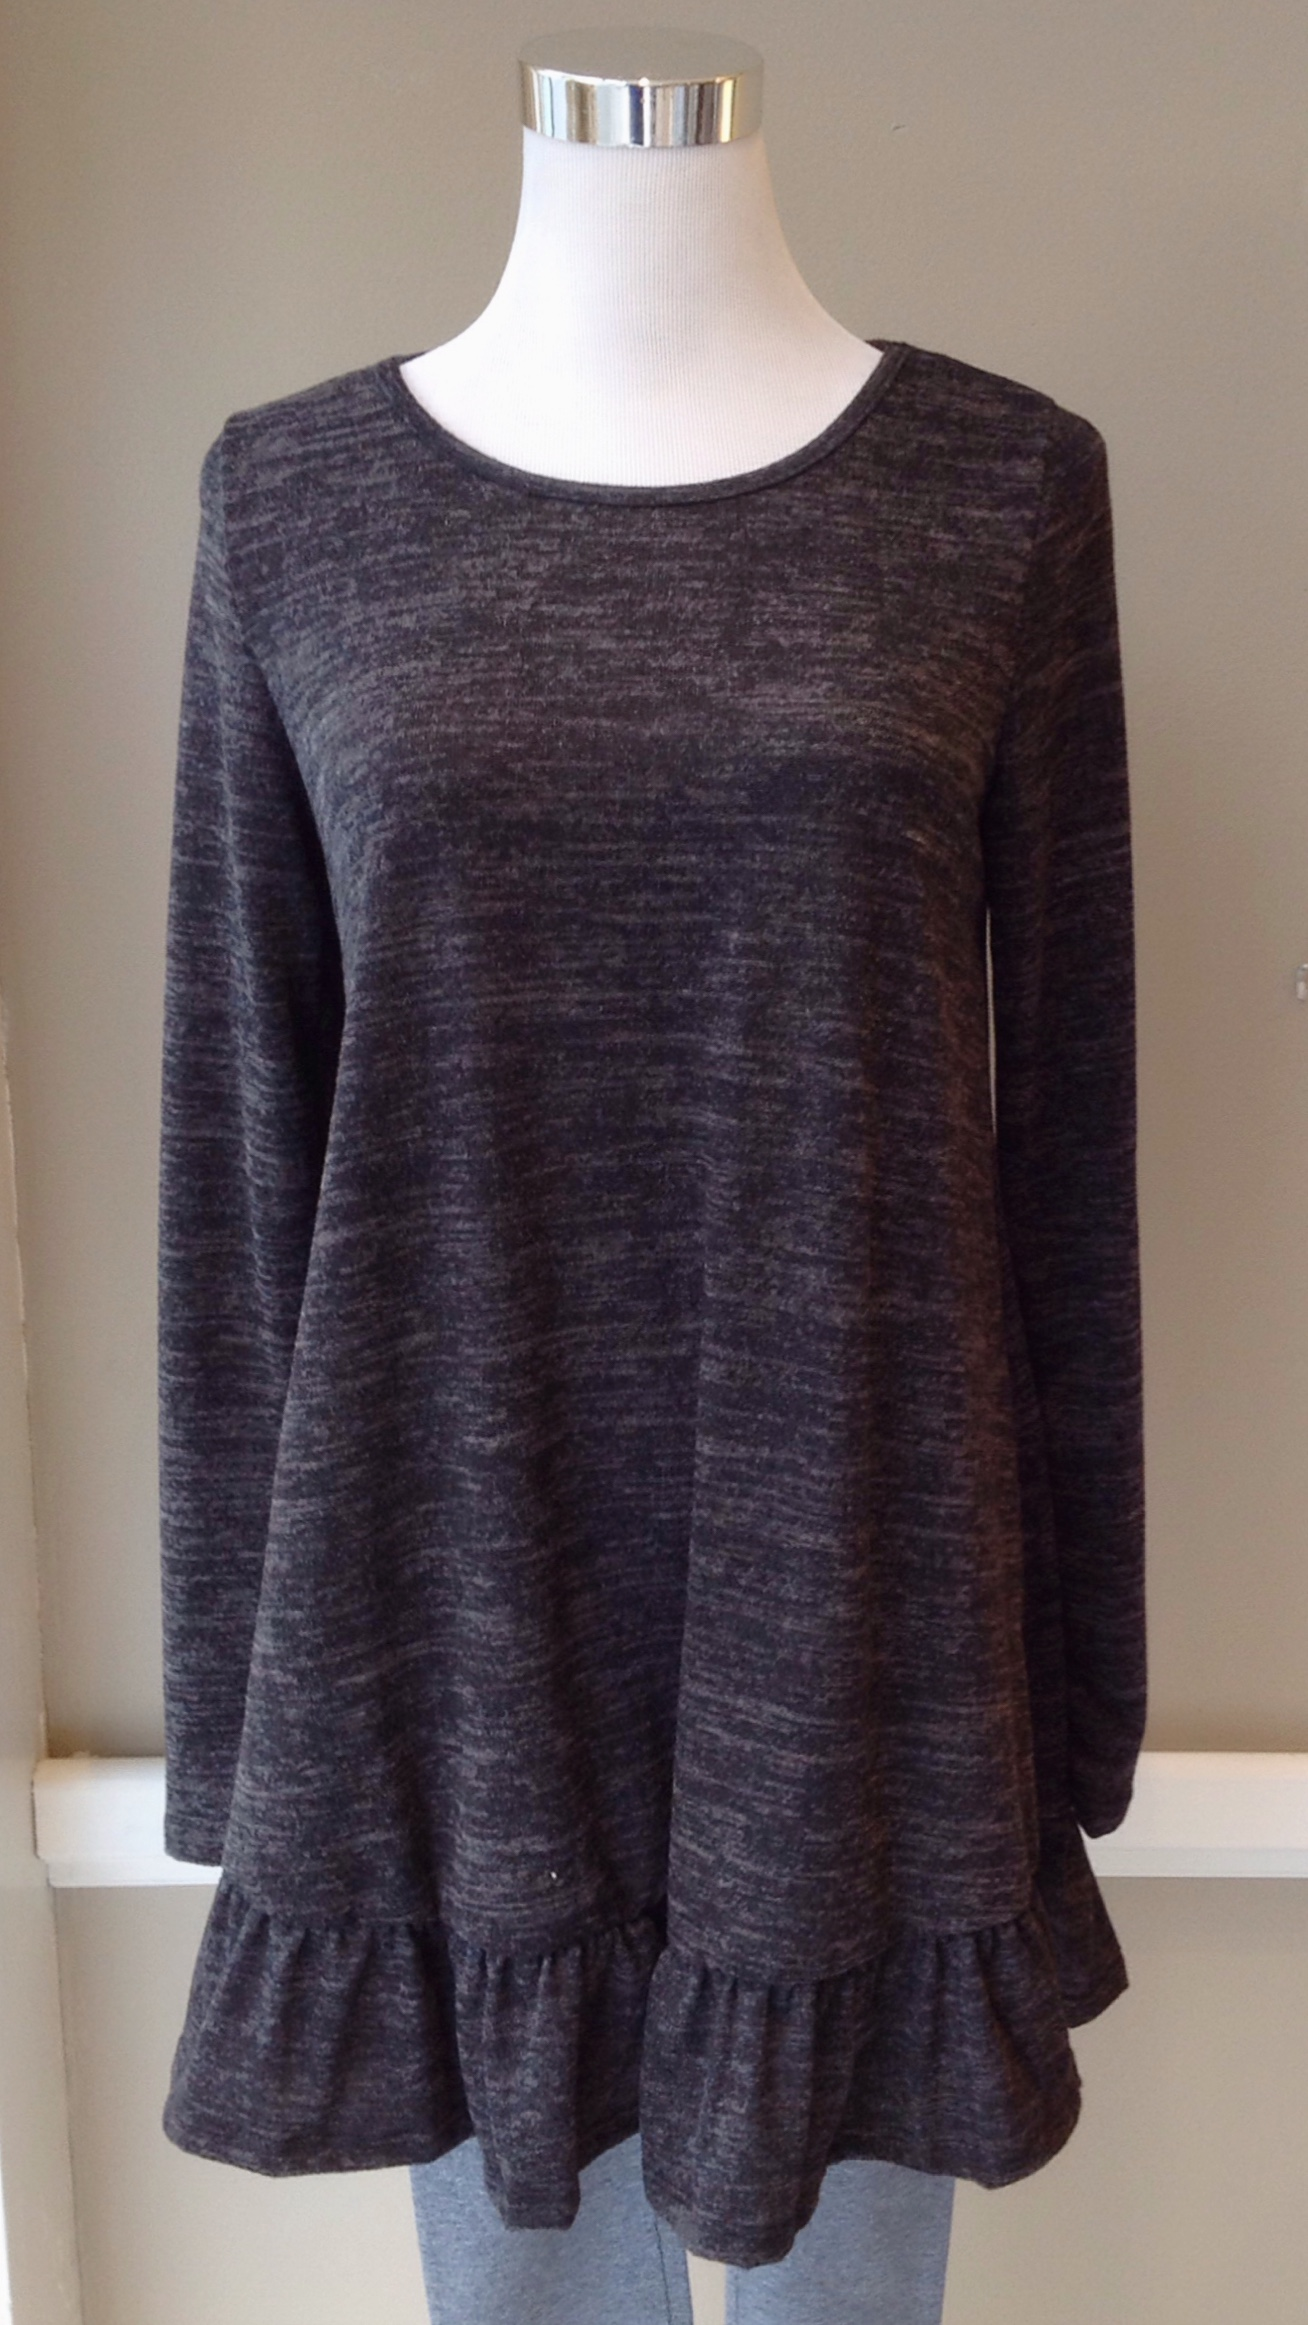 Long ruffled hem sweater in heathered charcoal, $35